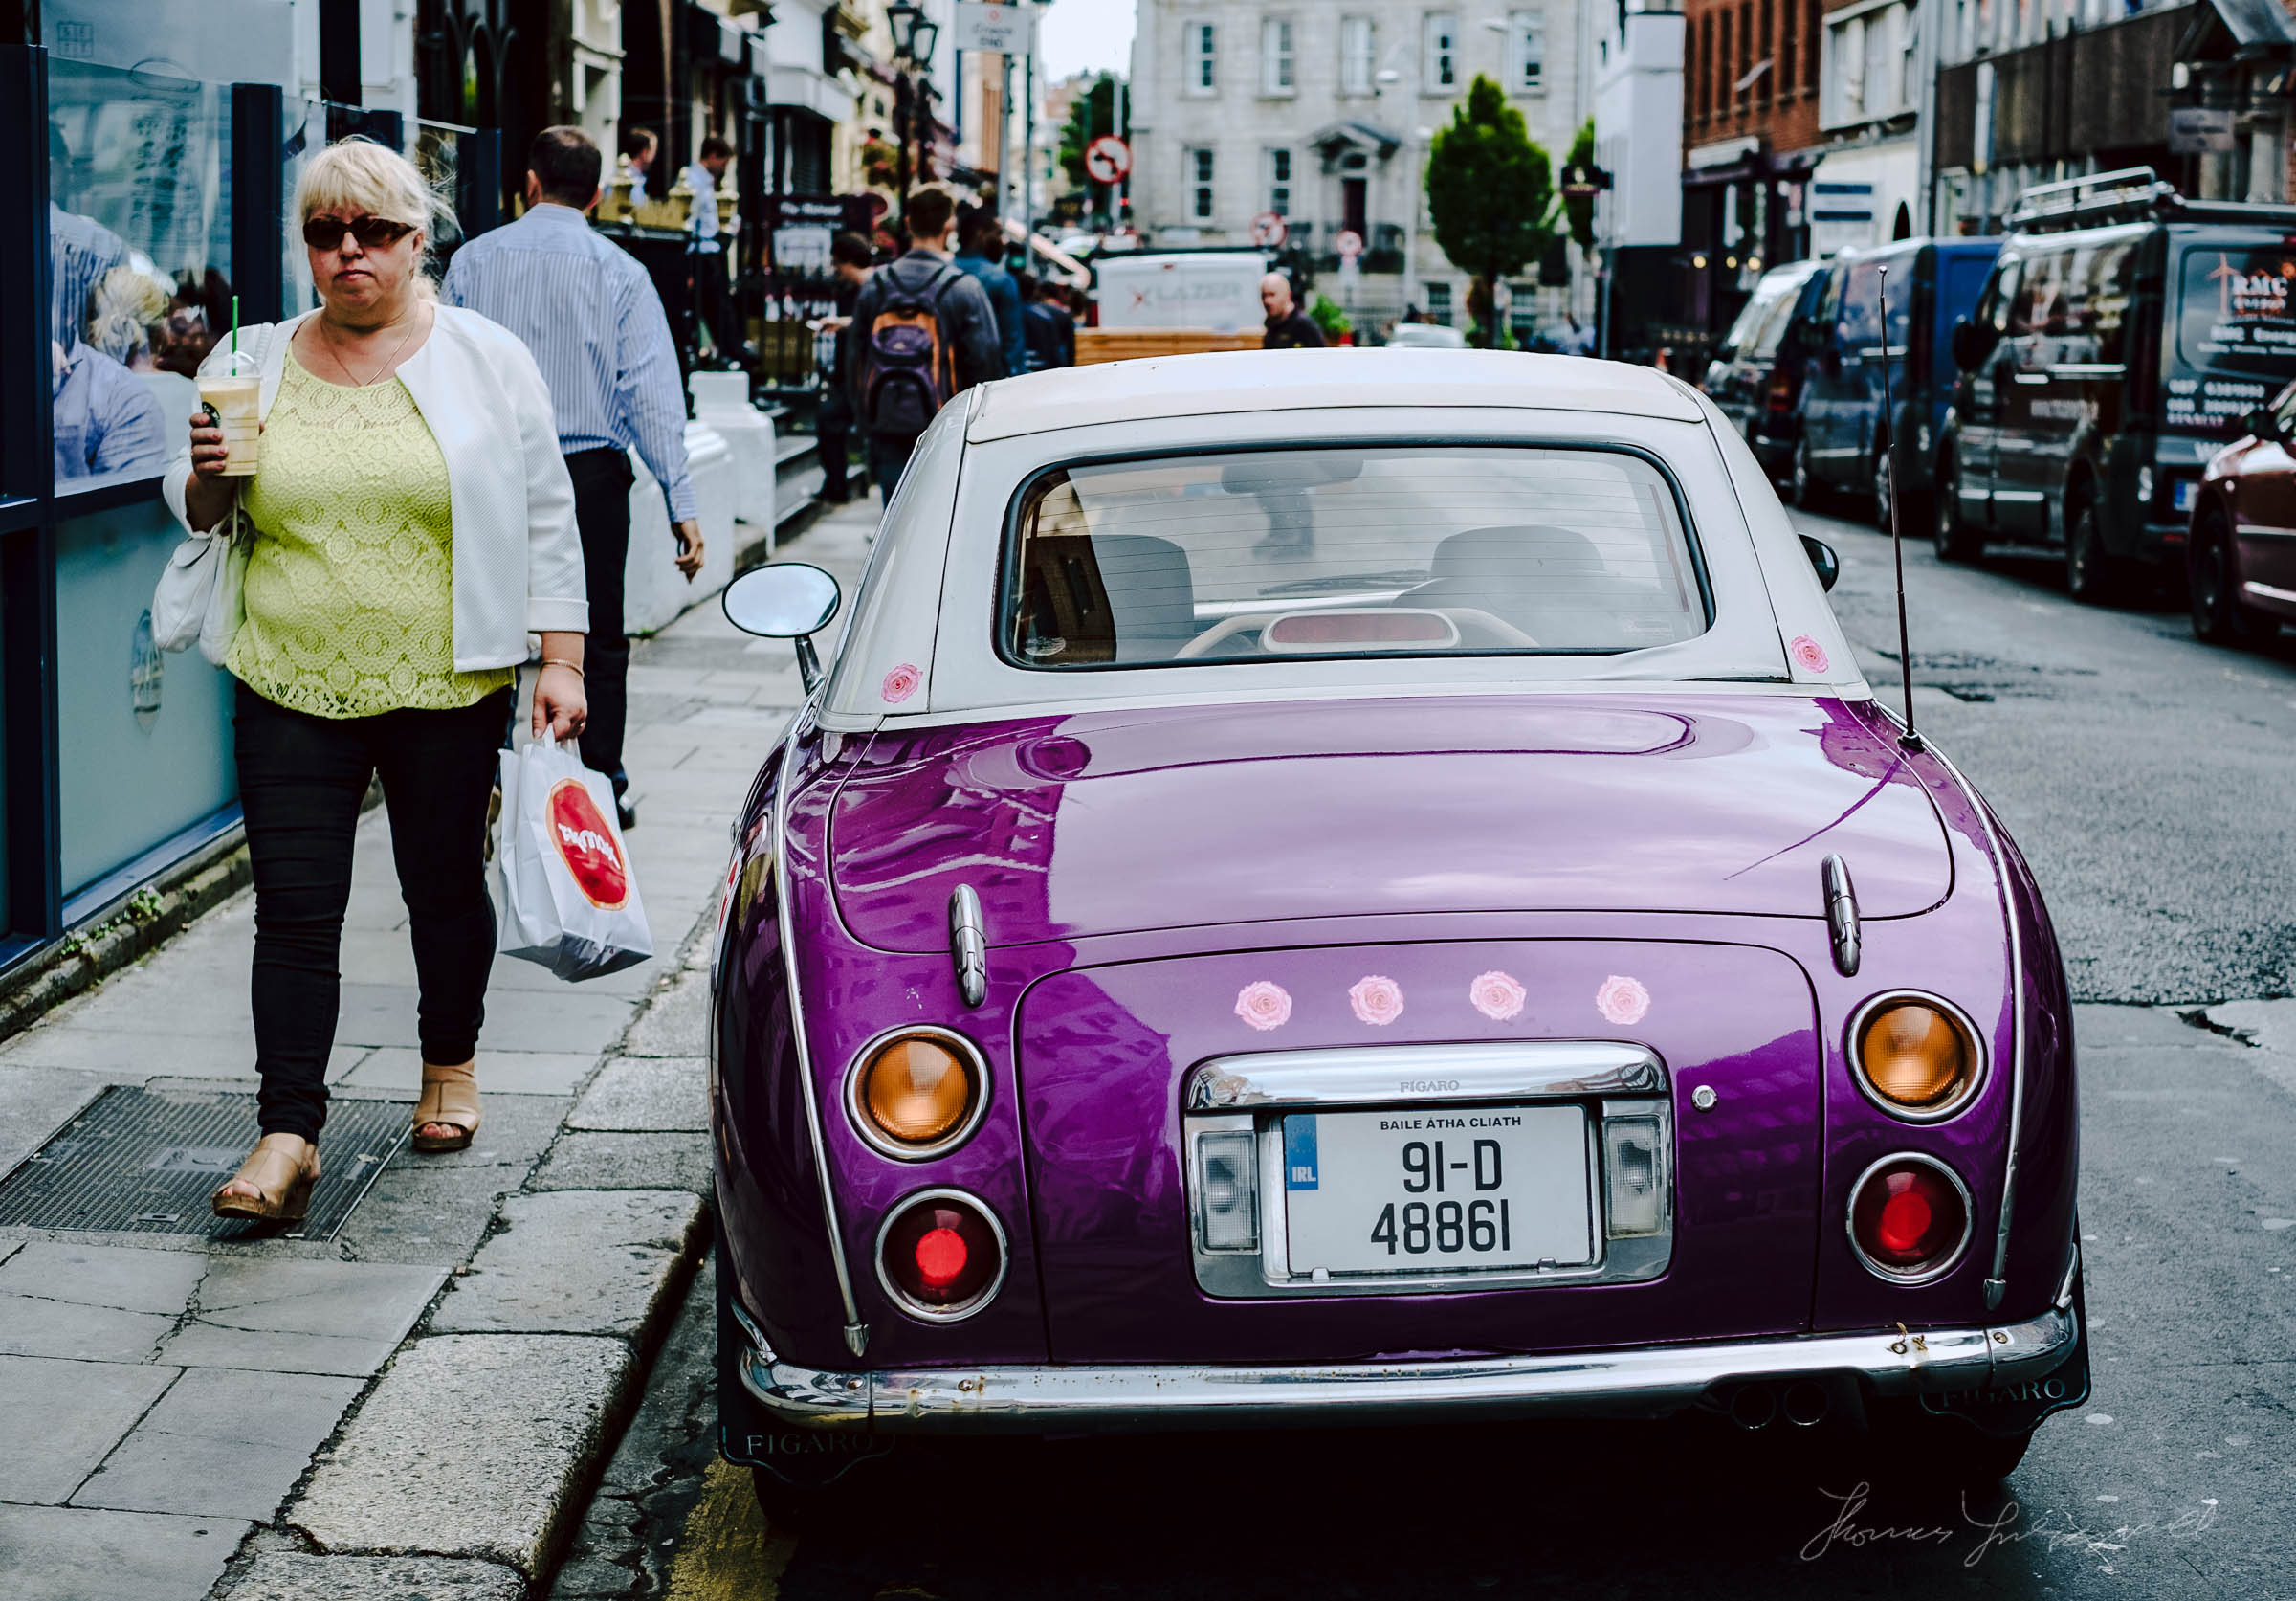 Cool car and Woman as Seen in Dublin City